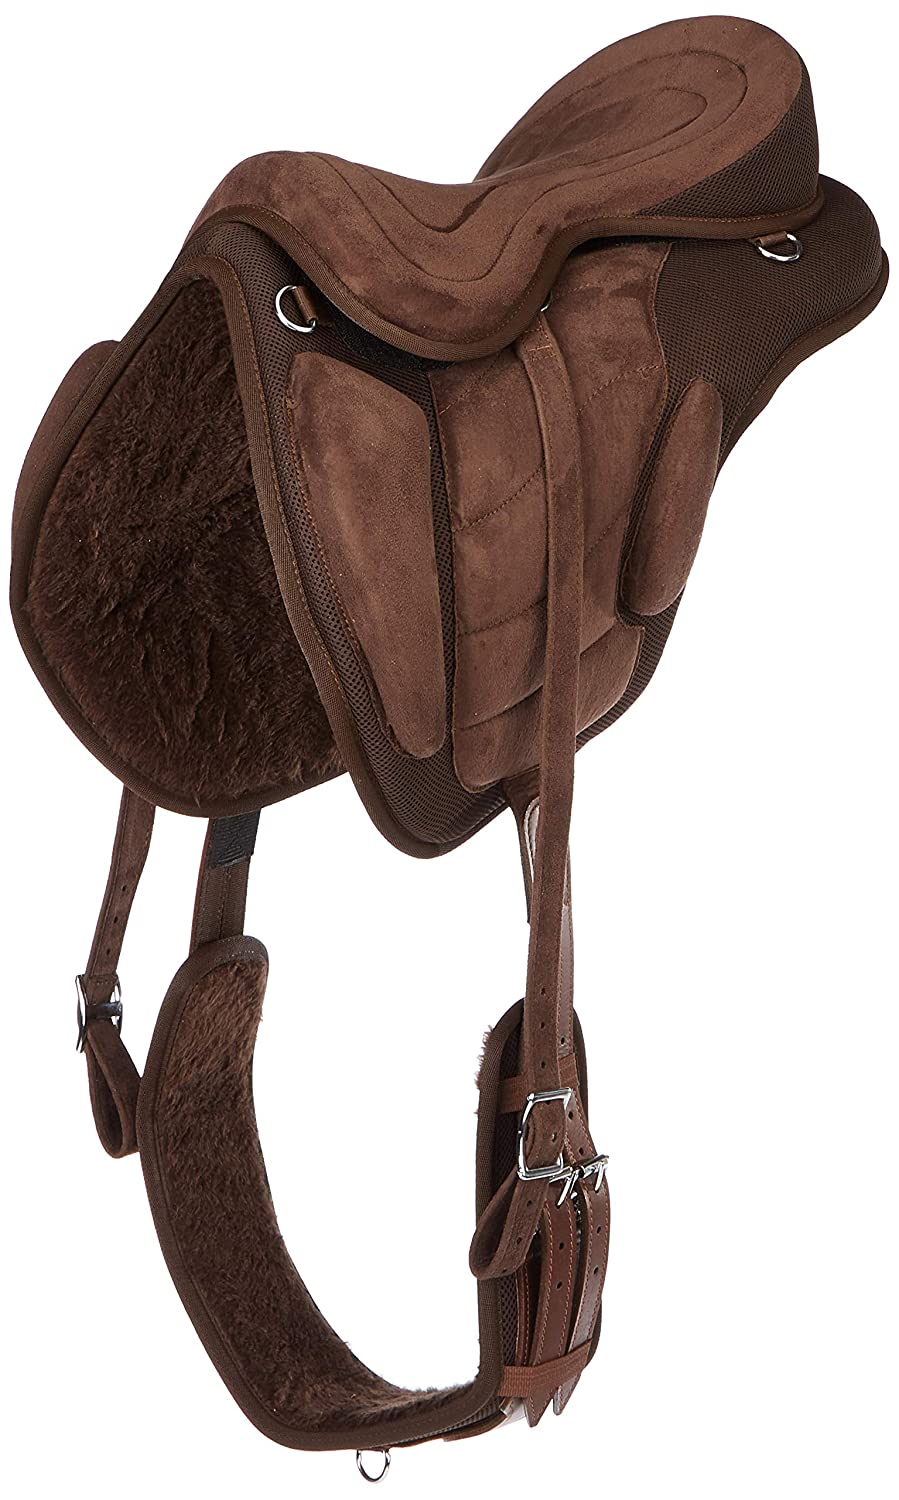 Cwell Equine New Synthetic All Purpose Treeless Saddle BROWN Sizes 16'/16.5'/17' 17.5'